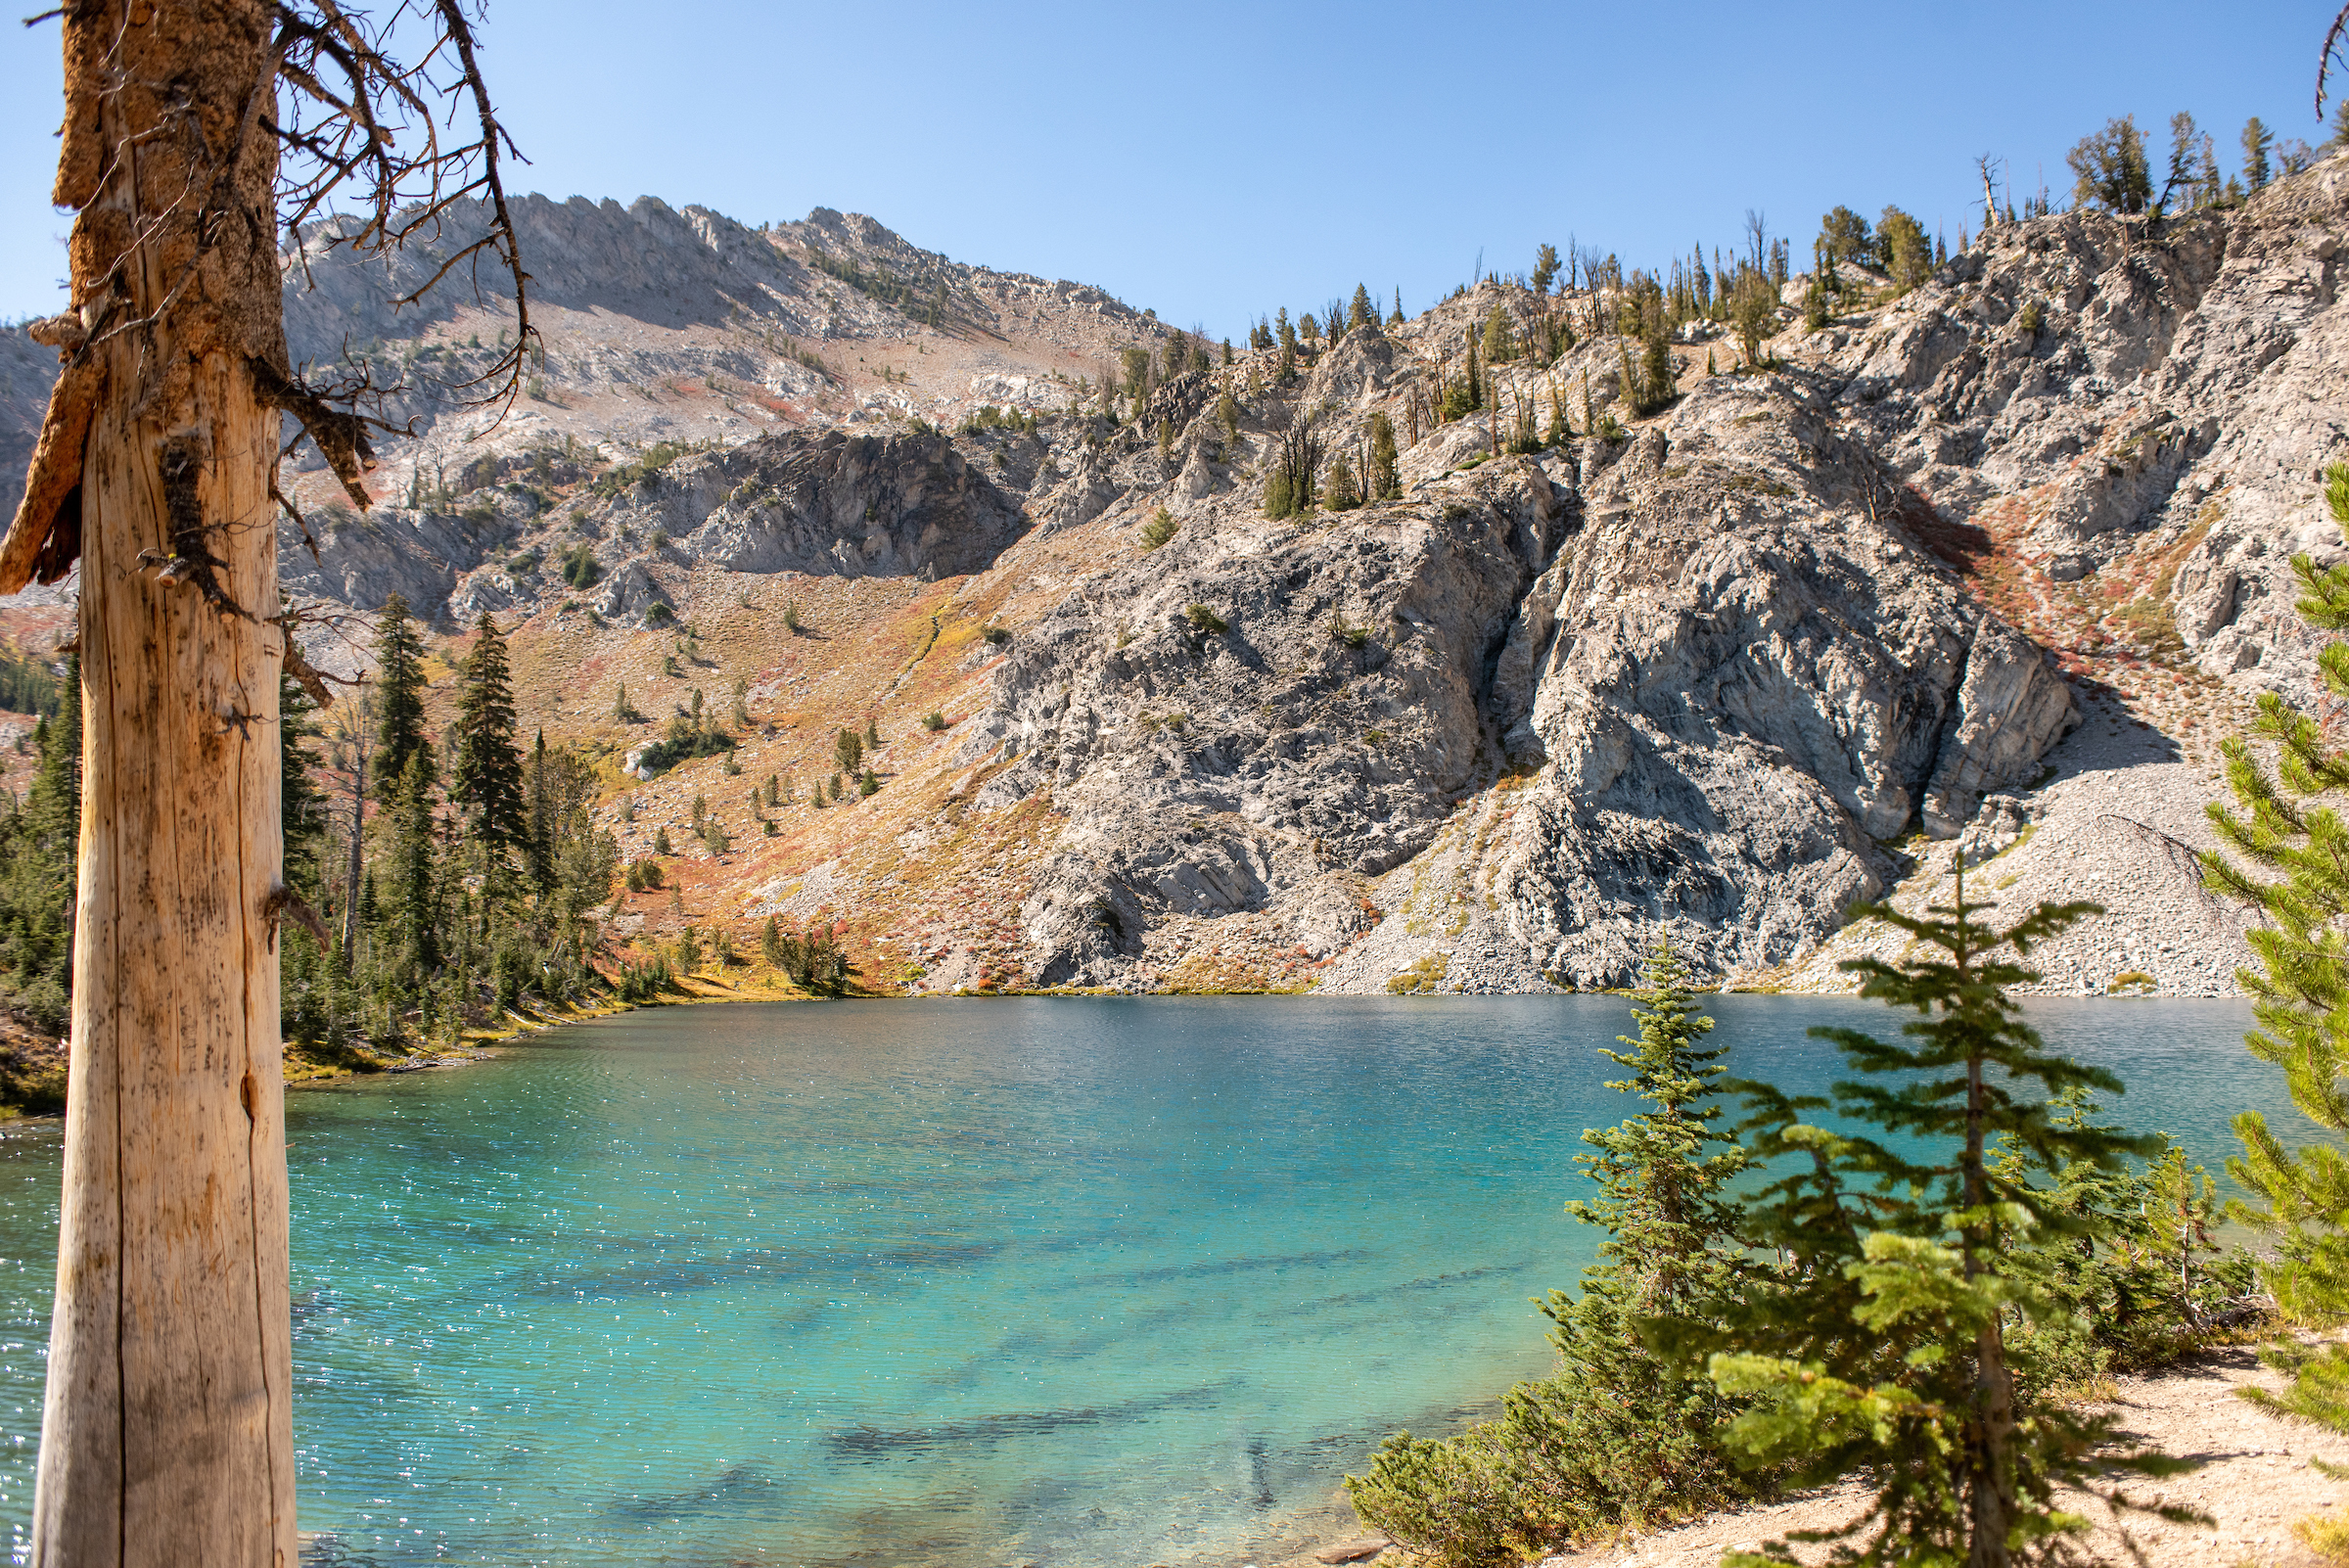 The alpine lake at the end of Cabin Creek Trail.